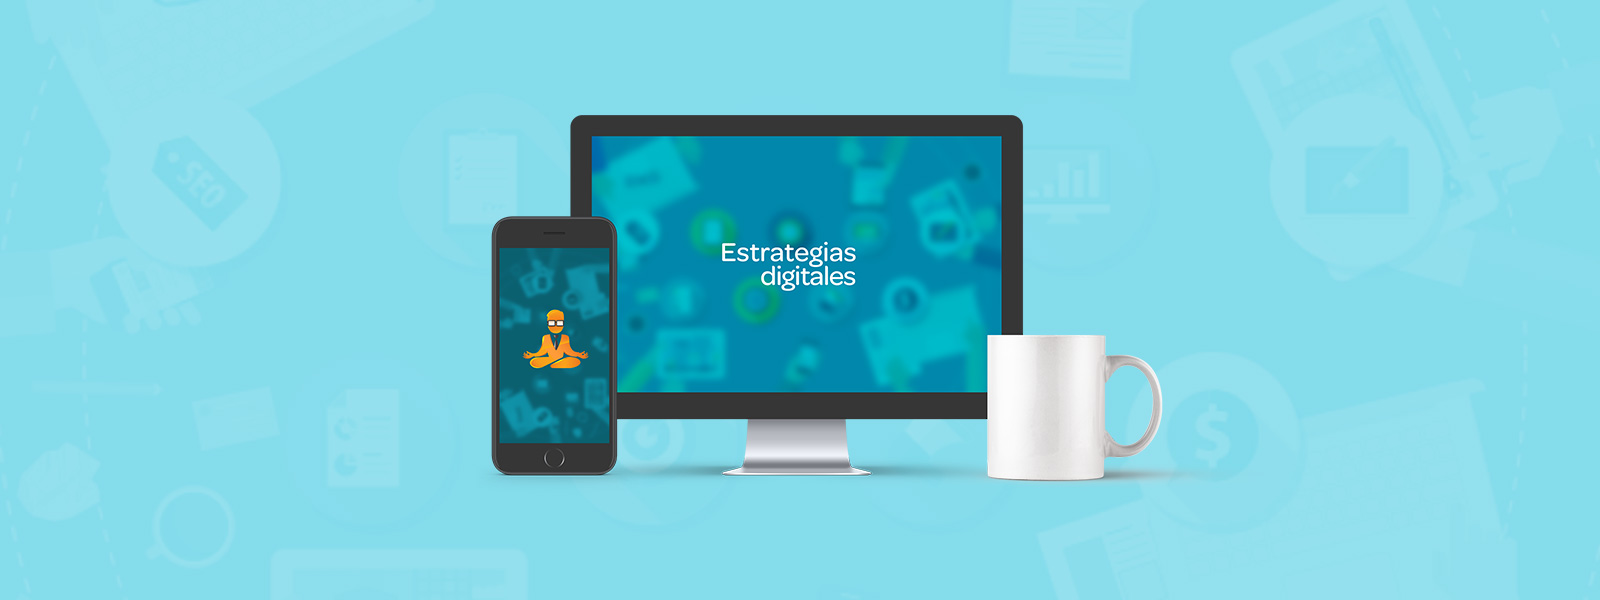 Agencia de Marketing Digital en Mexicali y Baja California